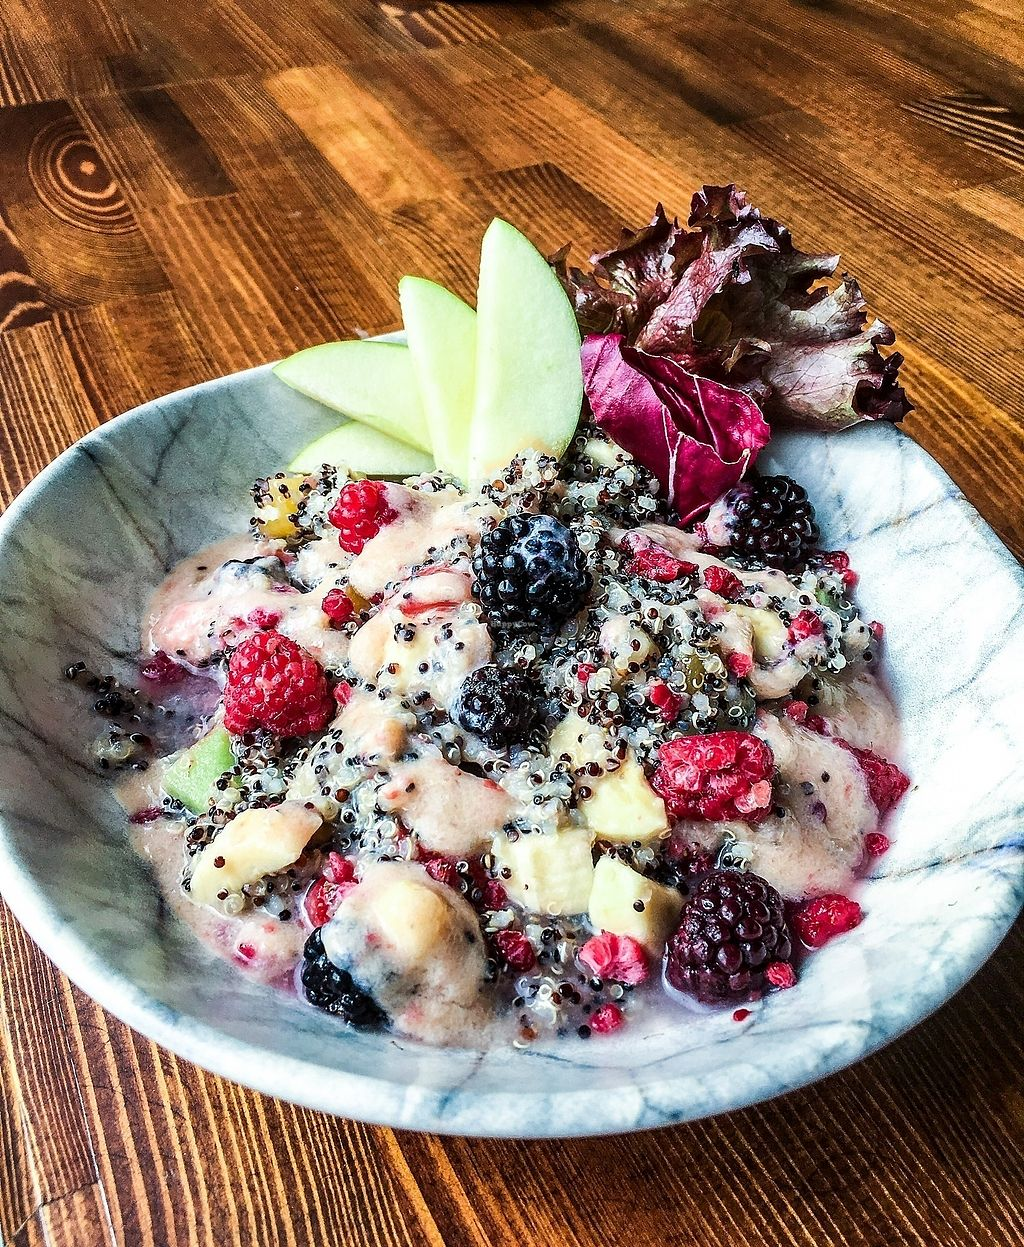 """Photo of The Juice Lounge  by <a href=""""/members/profile/Thejuicelounge"""">Thejuicelounge</a> <br/>Fruity quinoa salad - quinoa, varieties of fruits and berries.  <br/> April 14, 2018  - <a href='/contact/abuse/image/117252/385666'>Report</a>"""